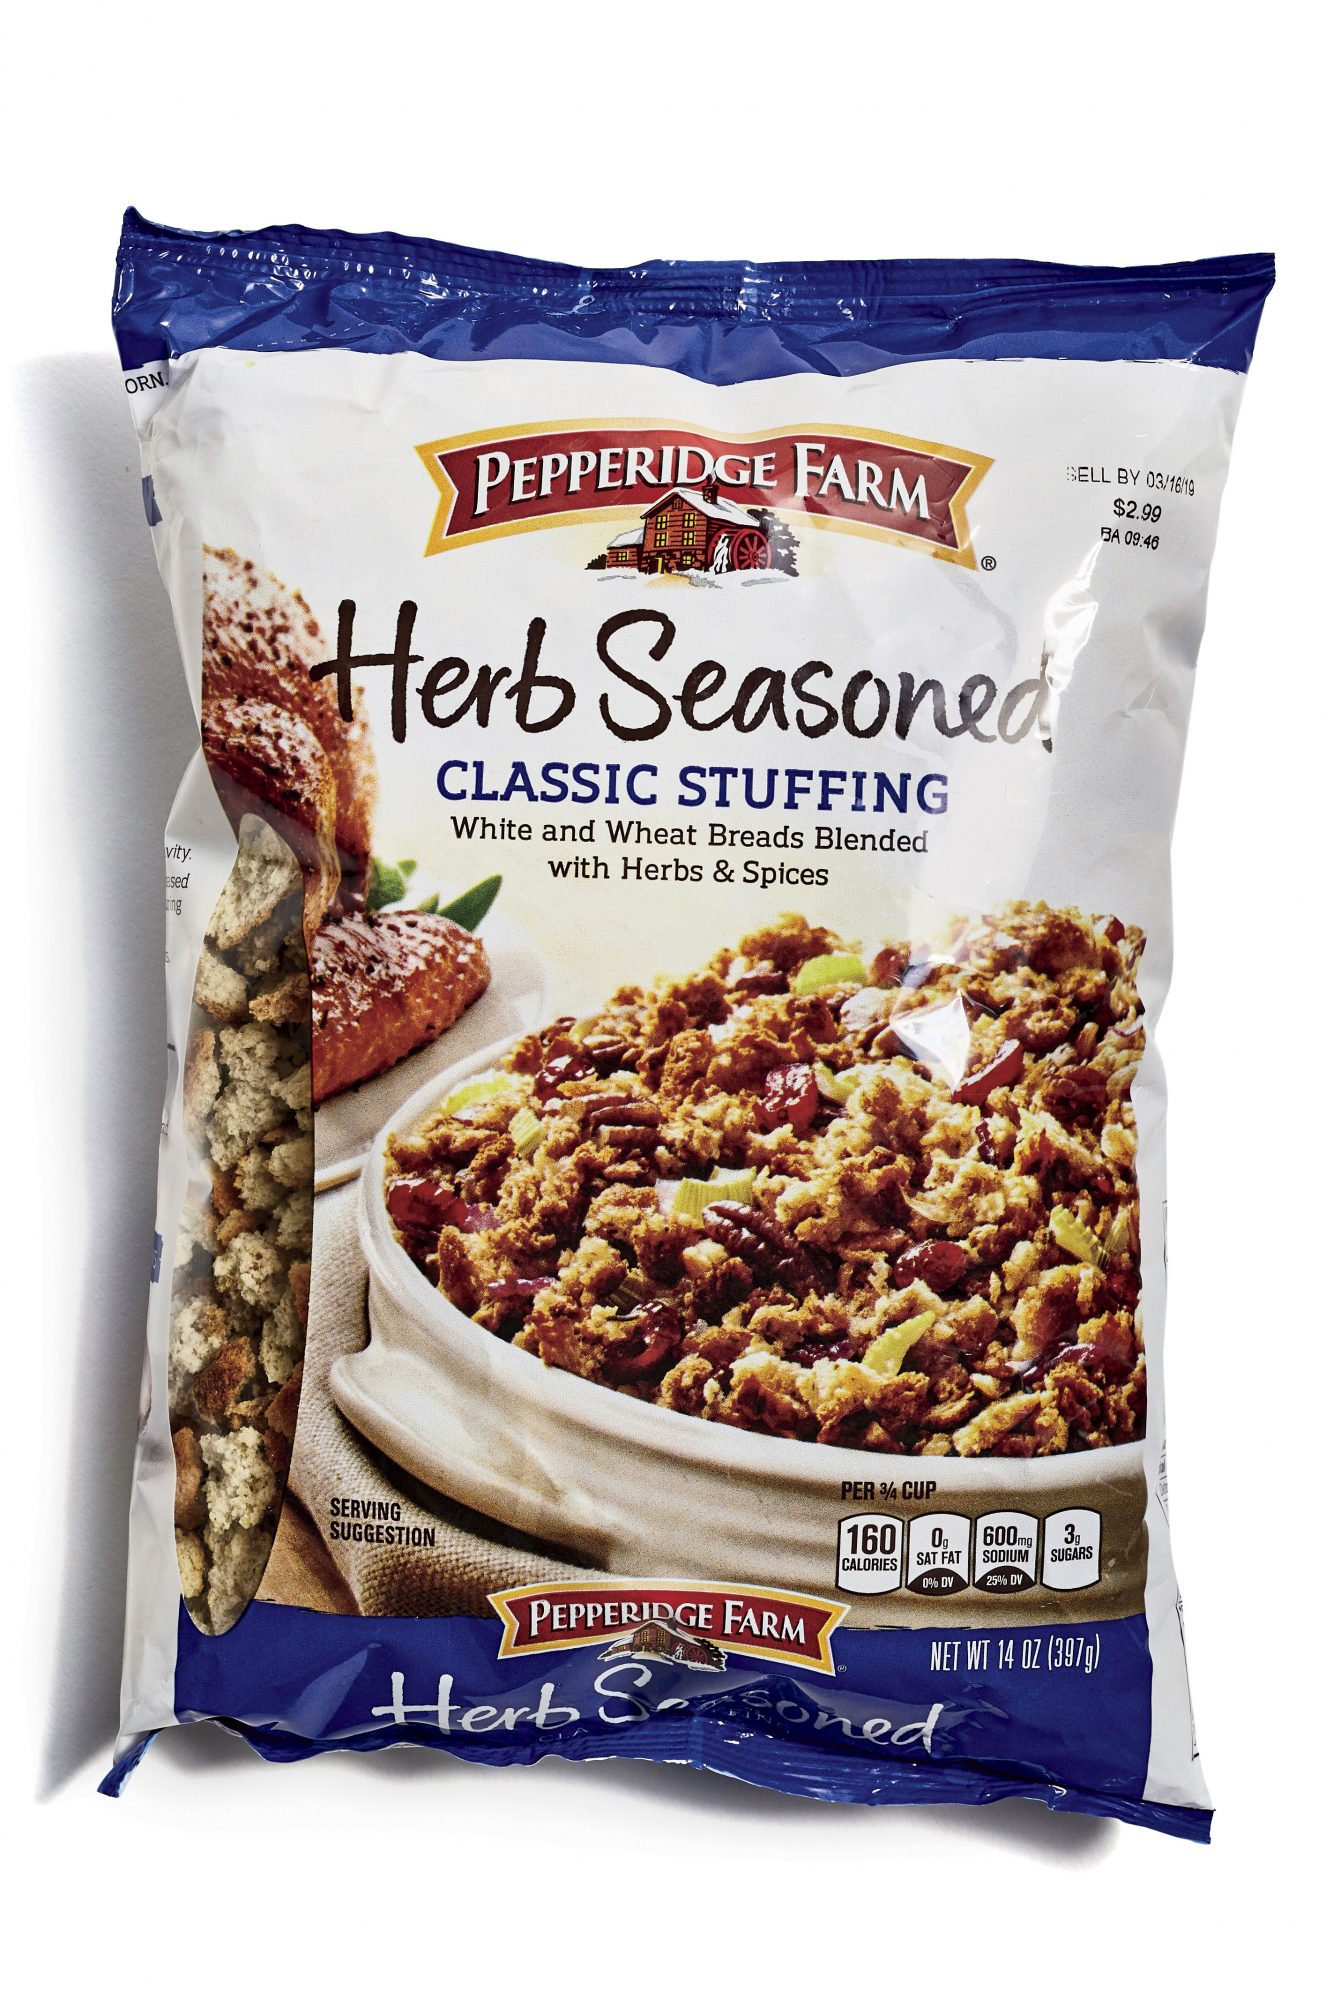 Pepperidge Farms Herb Seasoned Classic Stuffing Mix